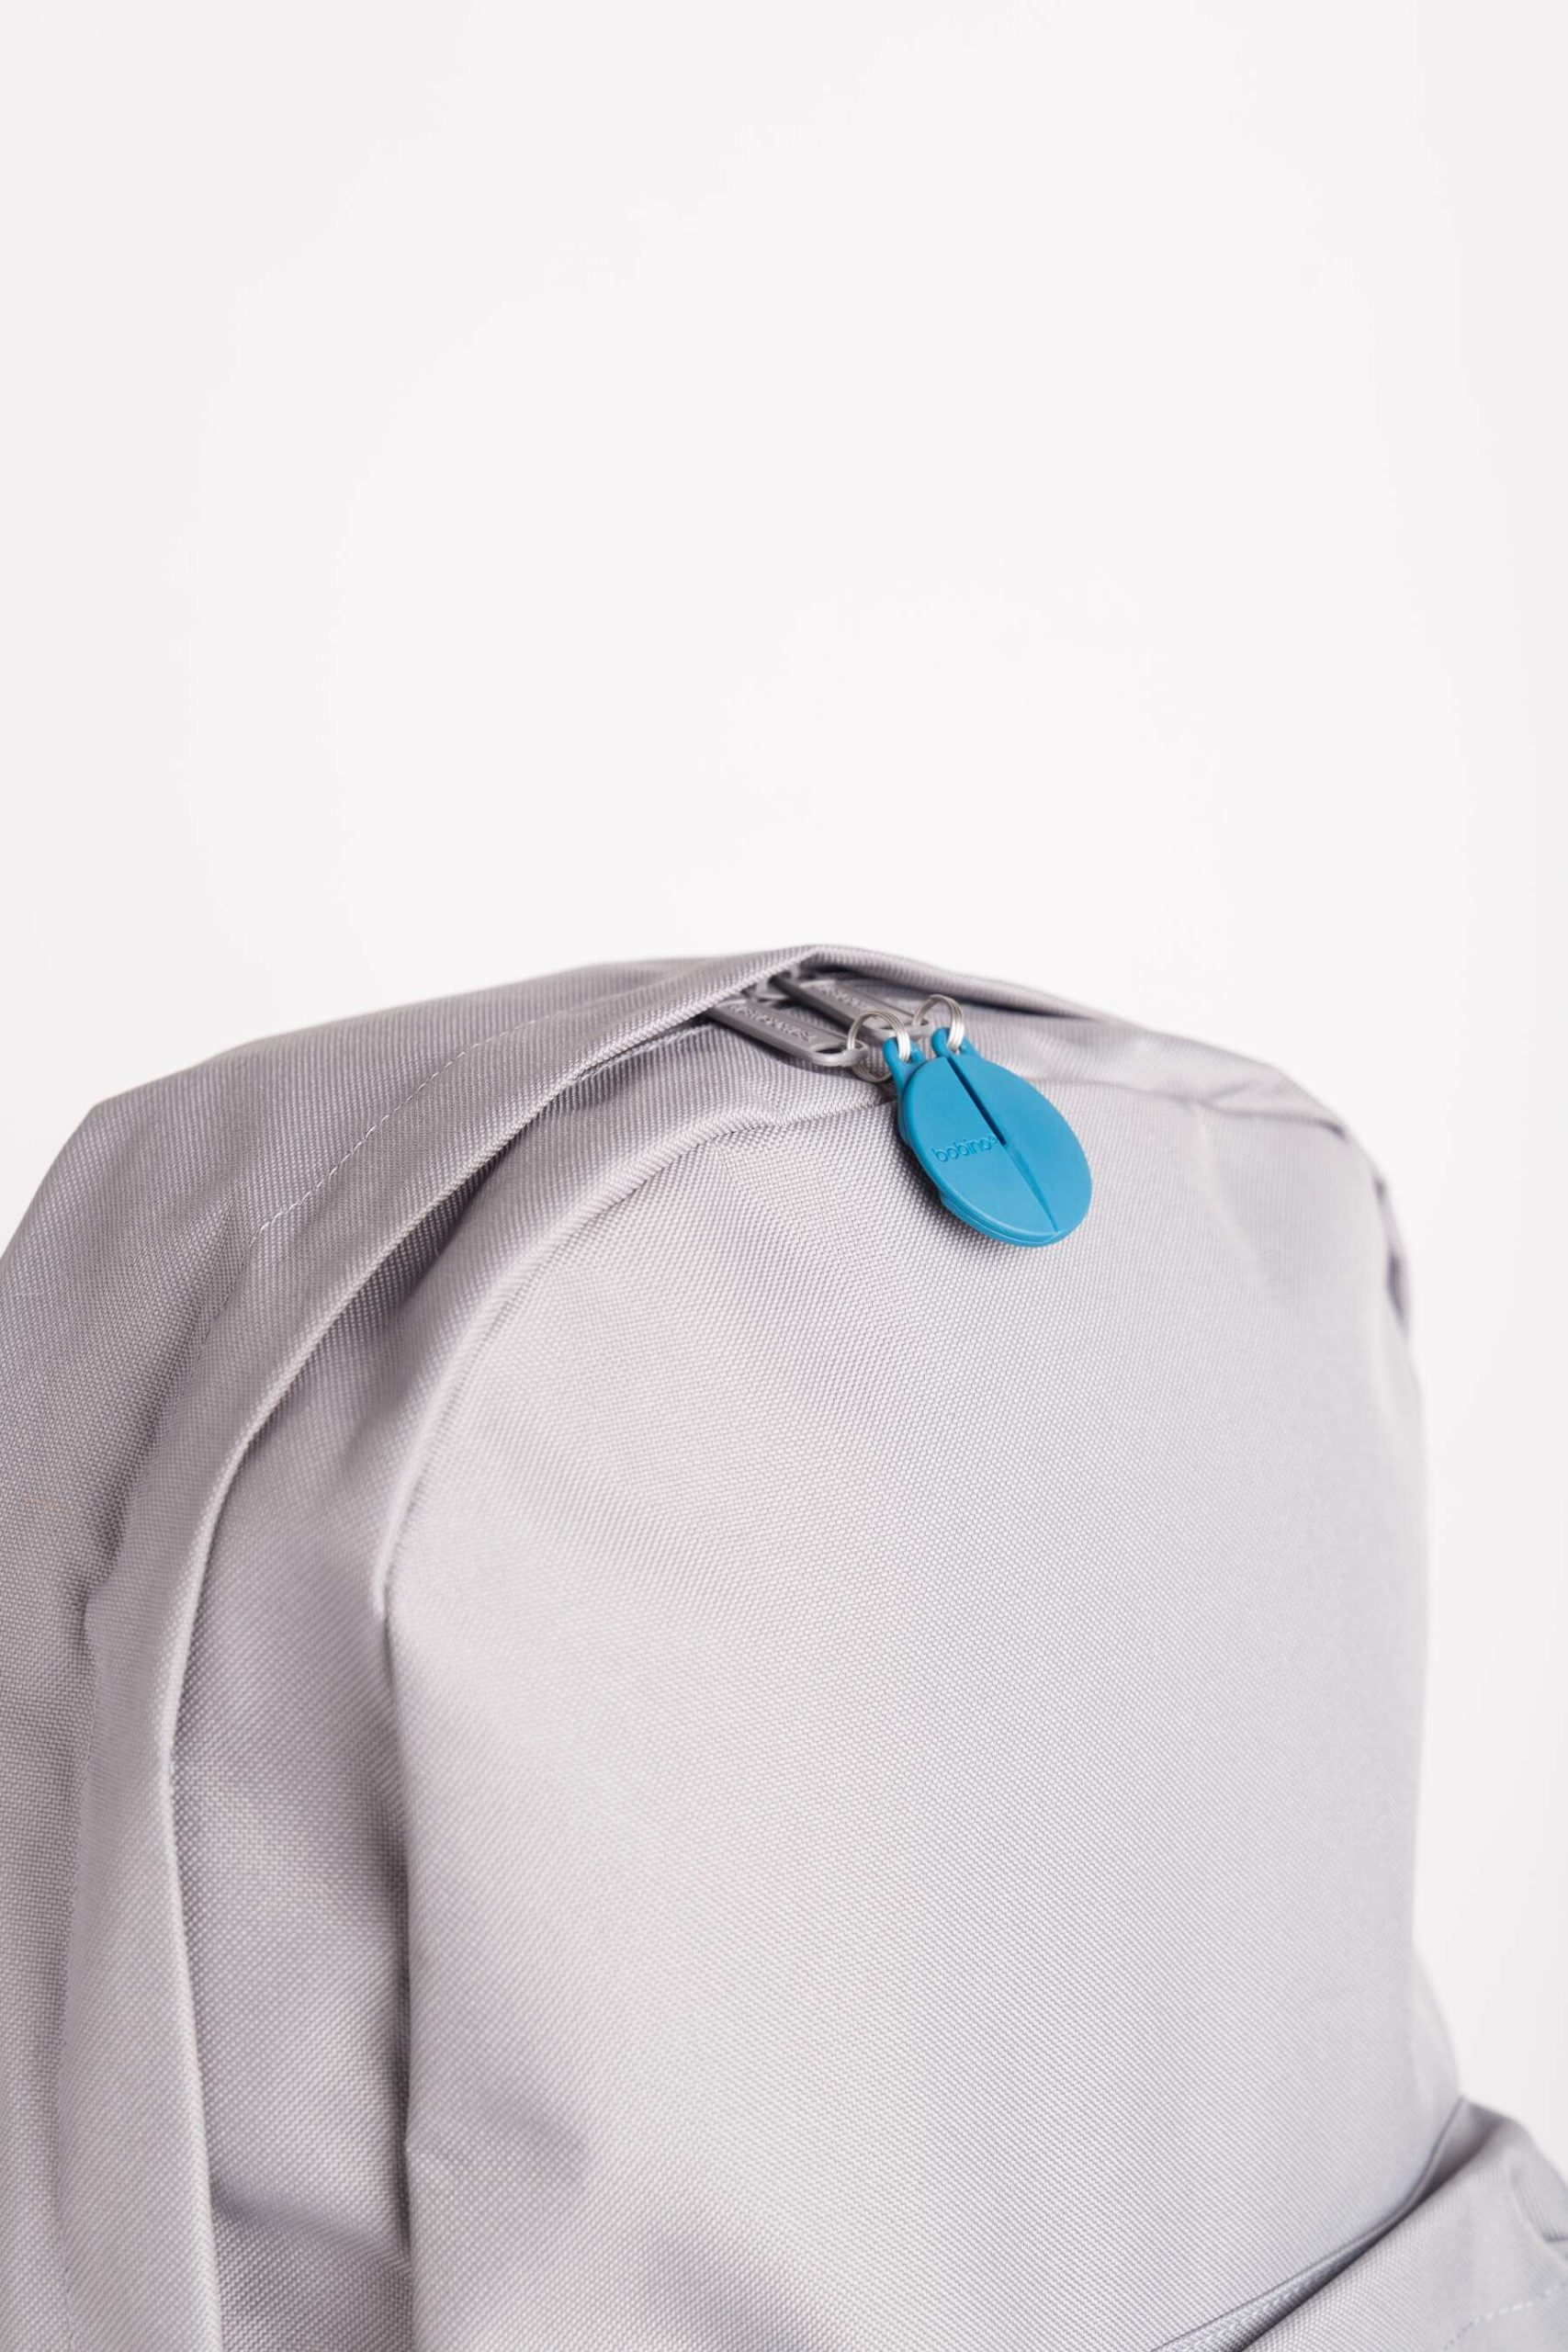 ZIPPER CLIP On the go security by ALOS. Product Design Studio.